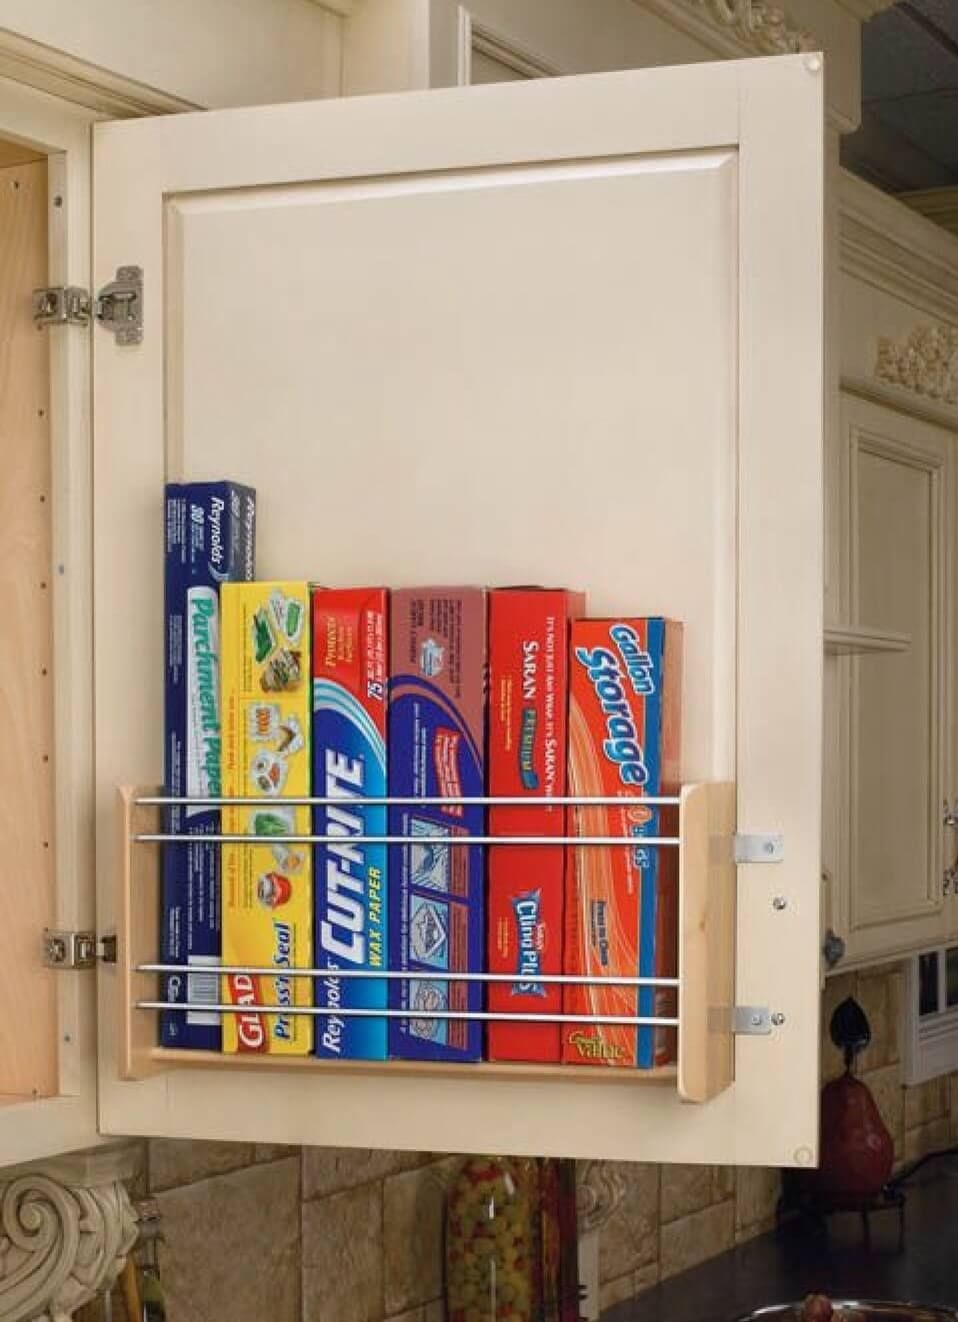 35 Practical Storage Ideas For A Small Kitchen Organization  Food Inspiration Kitchen Storage Cabinets With Doors Review